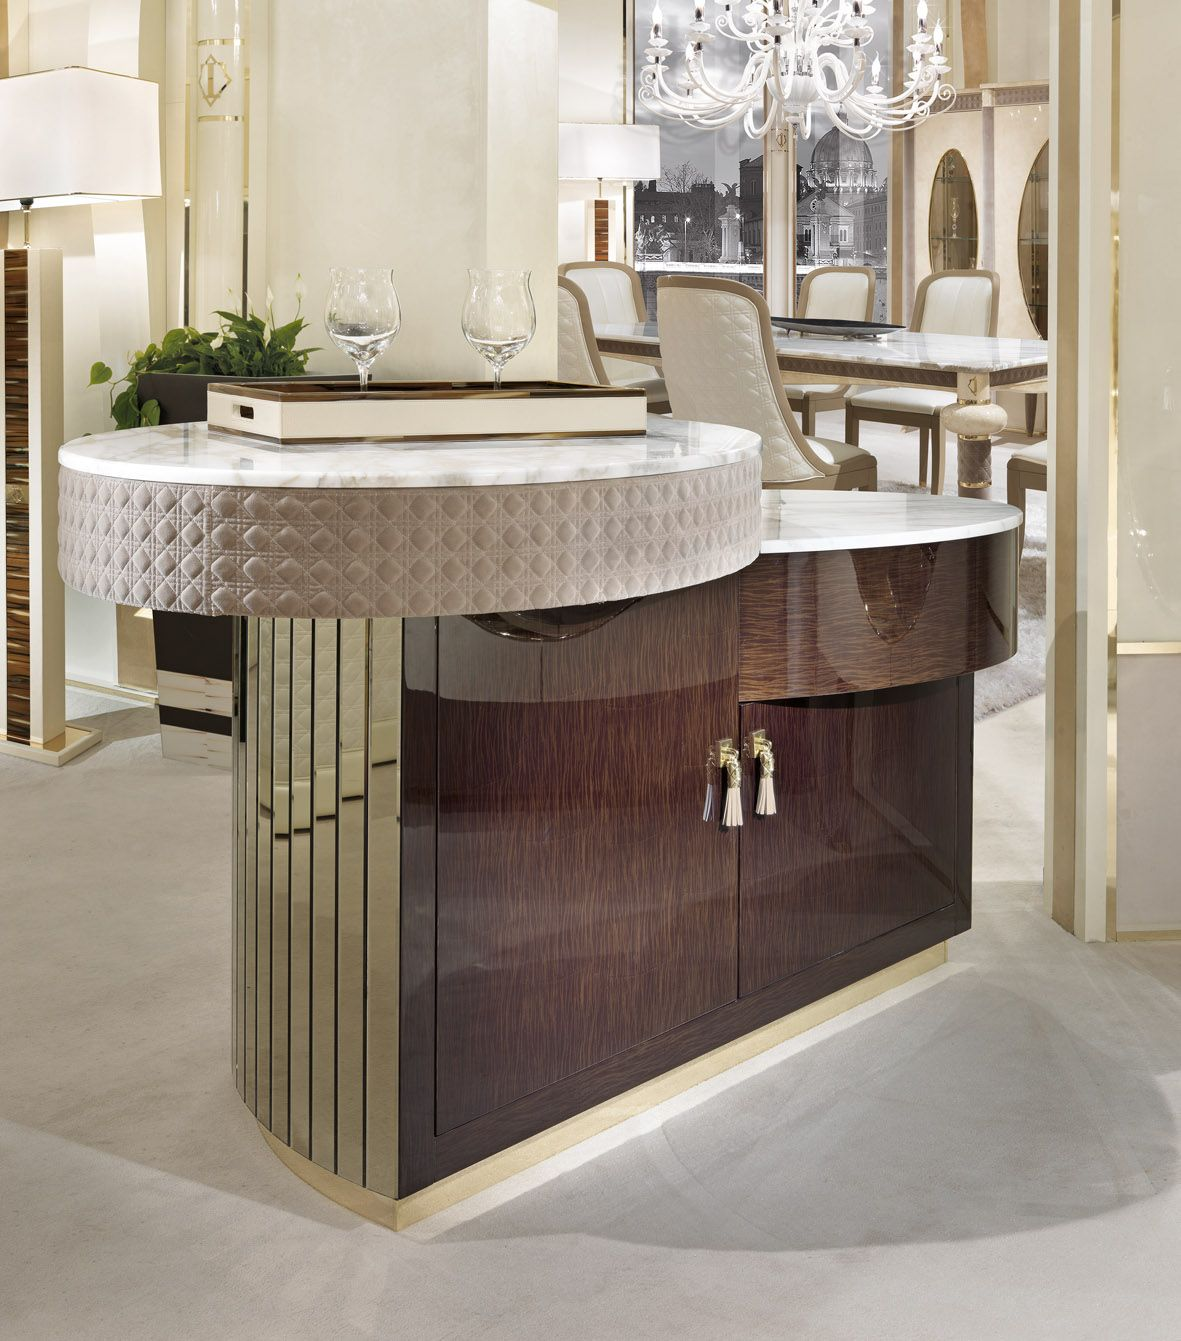 Bar De Salon Moderne Italian Furniture For Exclusive And Modern Design 边几